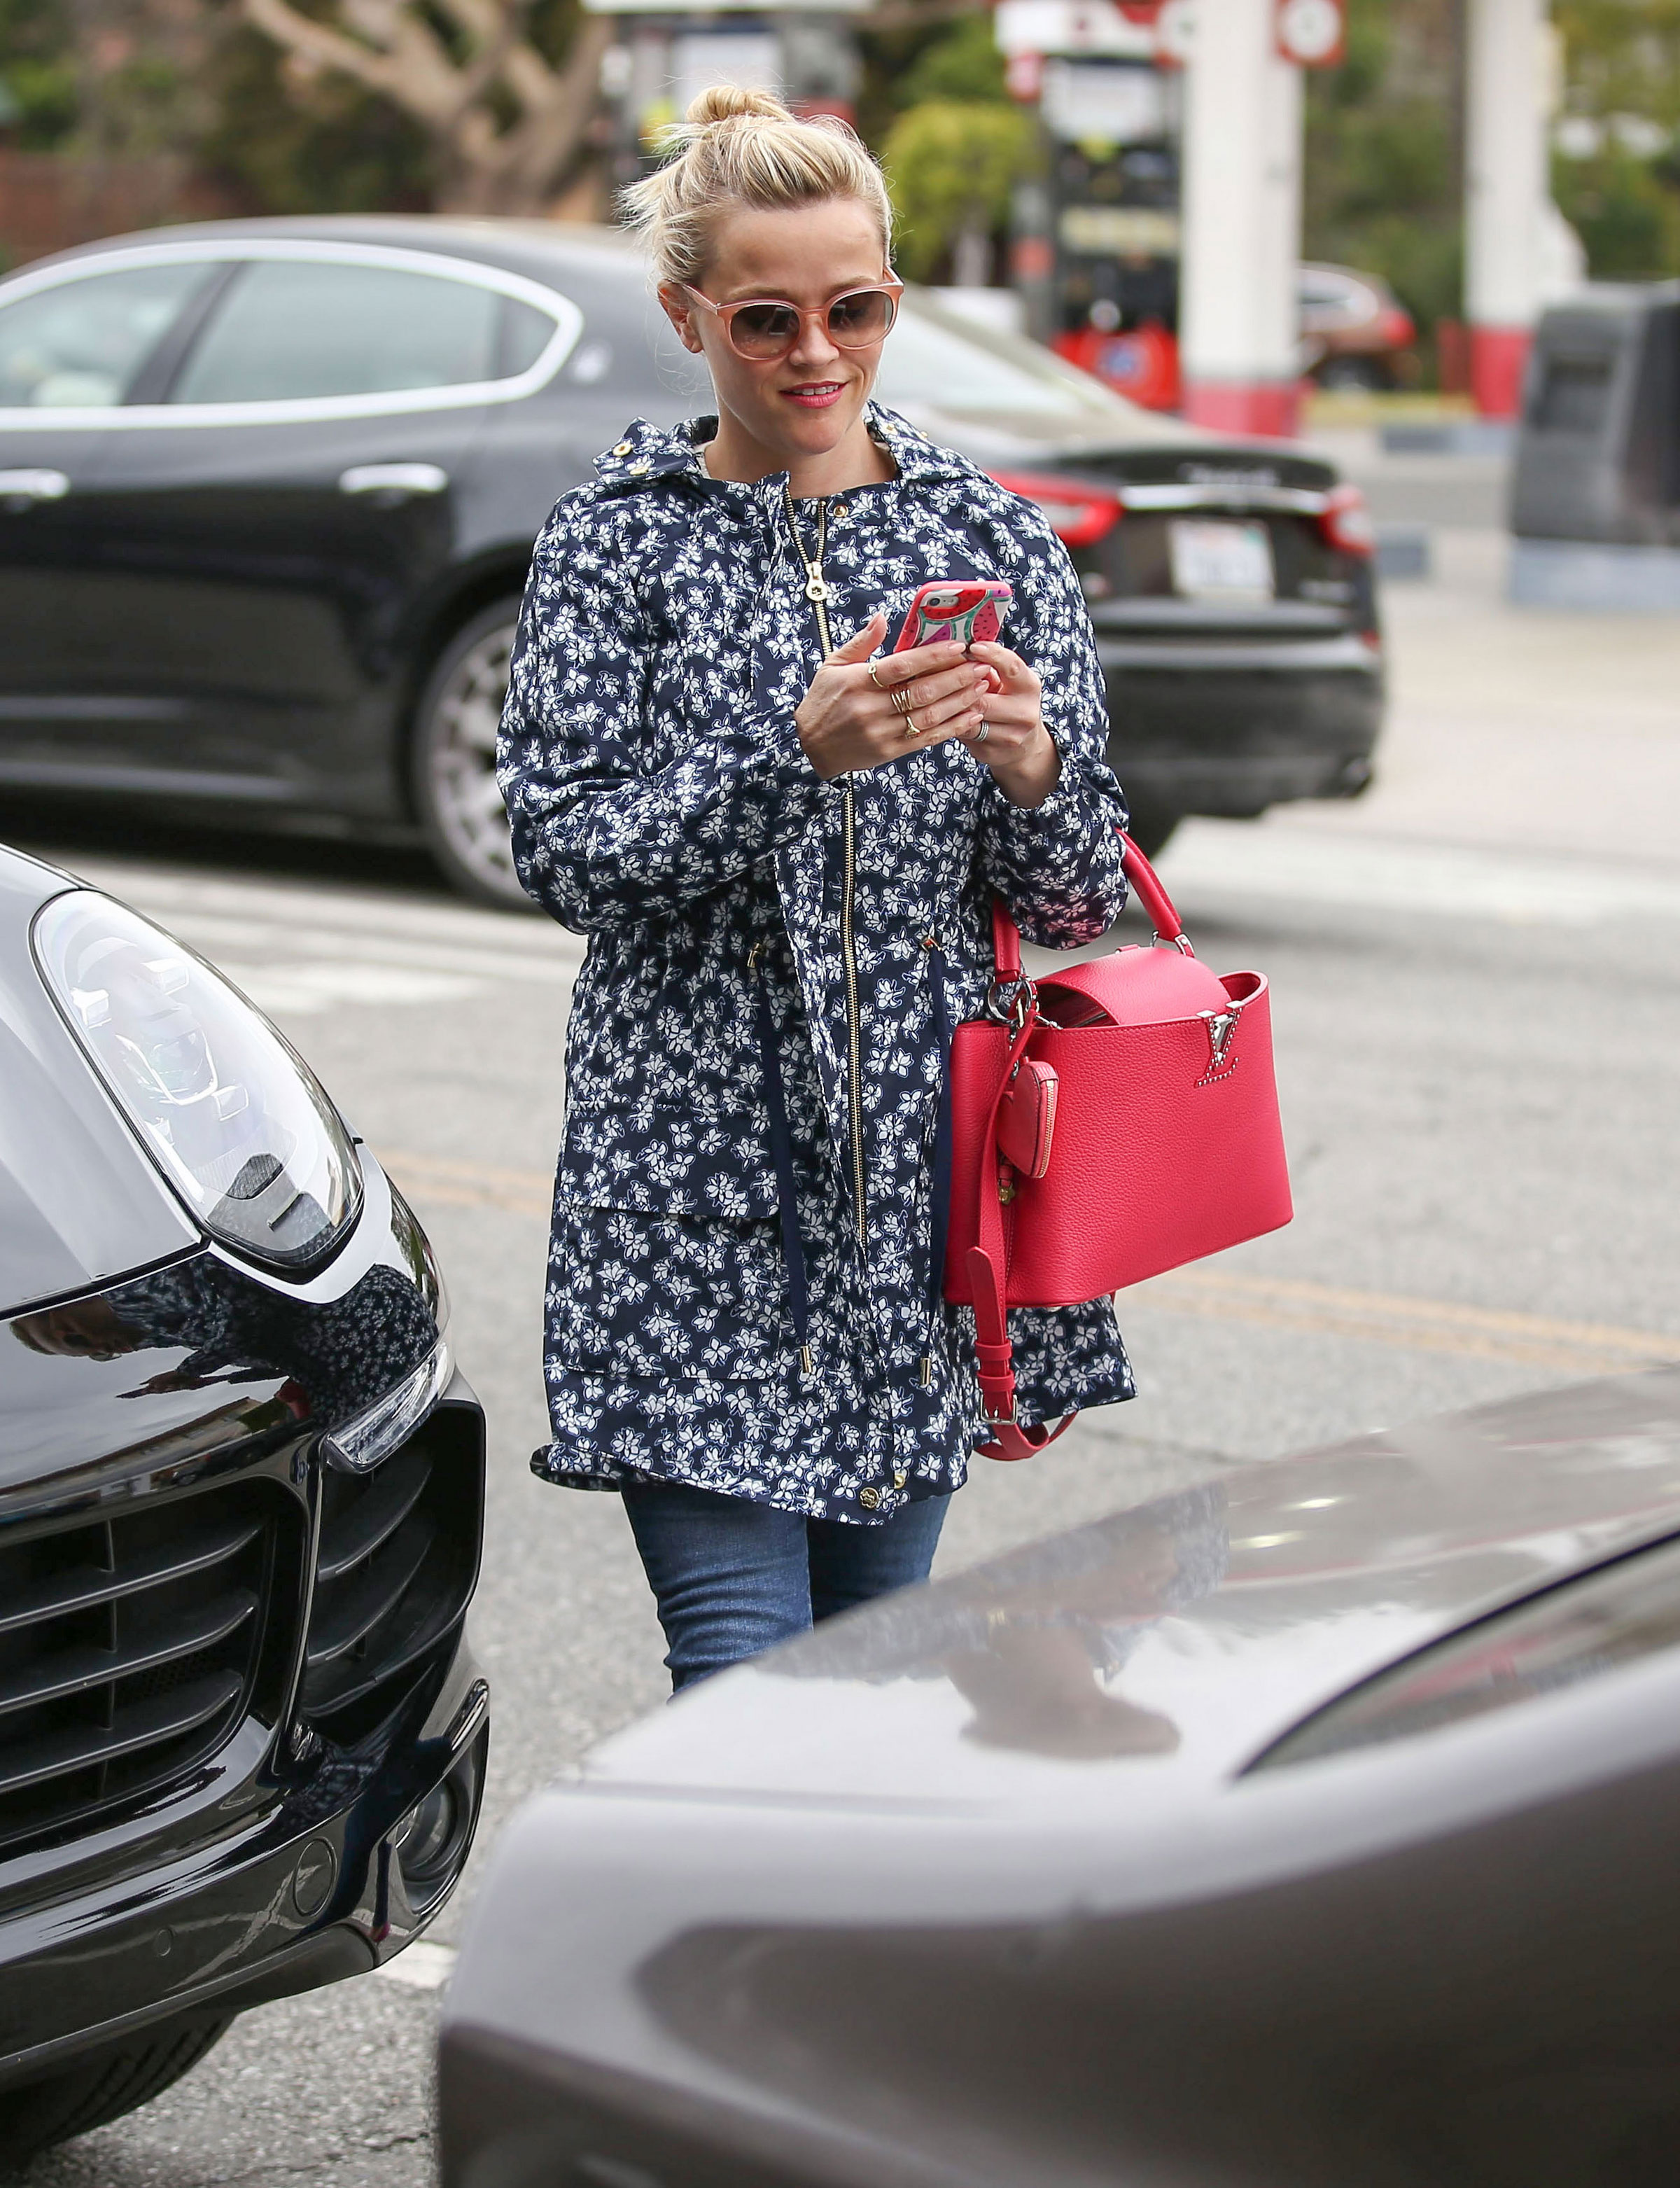 Reese Witherspoon stays stylish in the rain in a floral Draper James jacket.